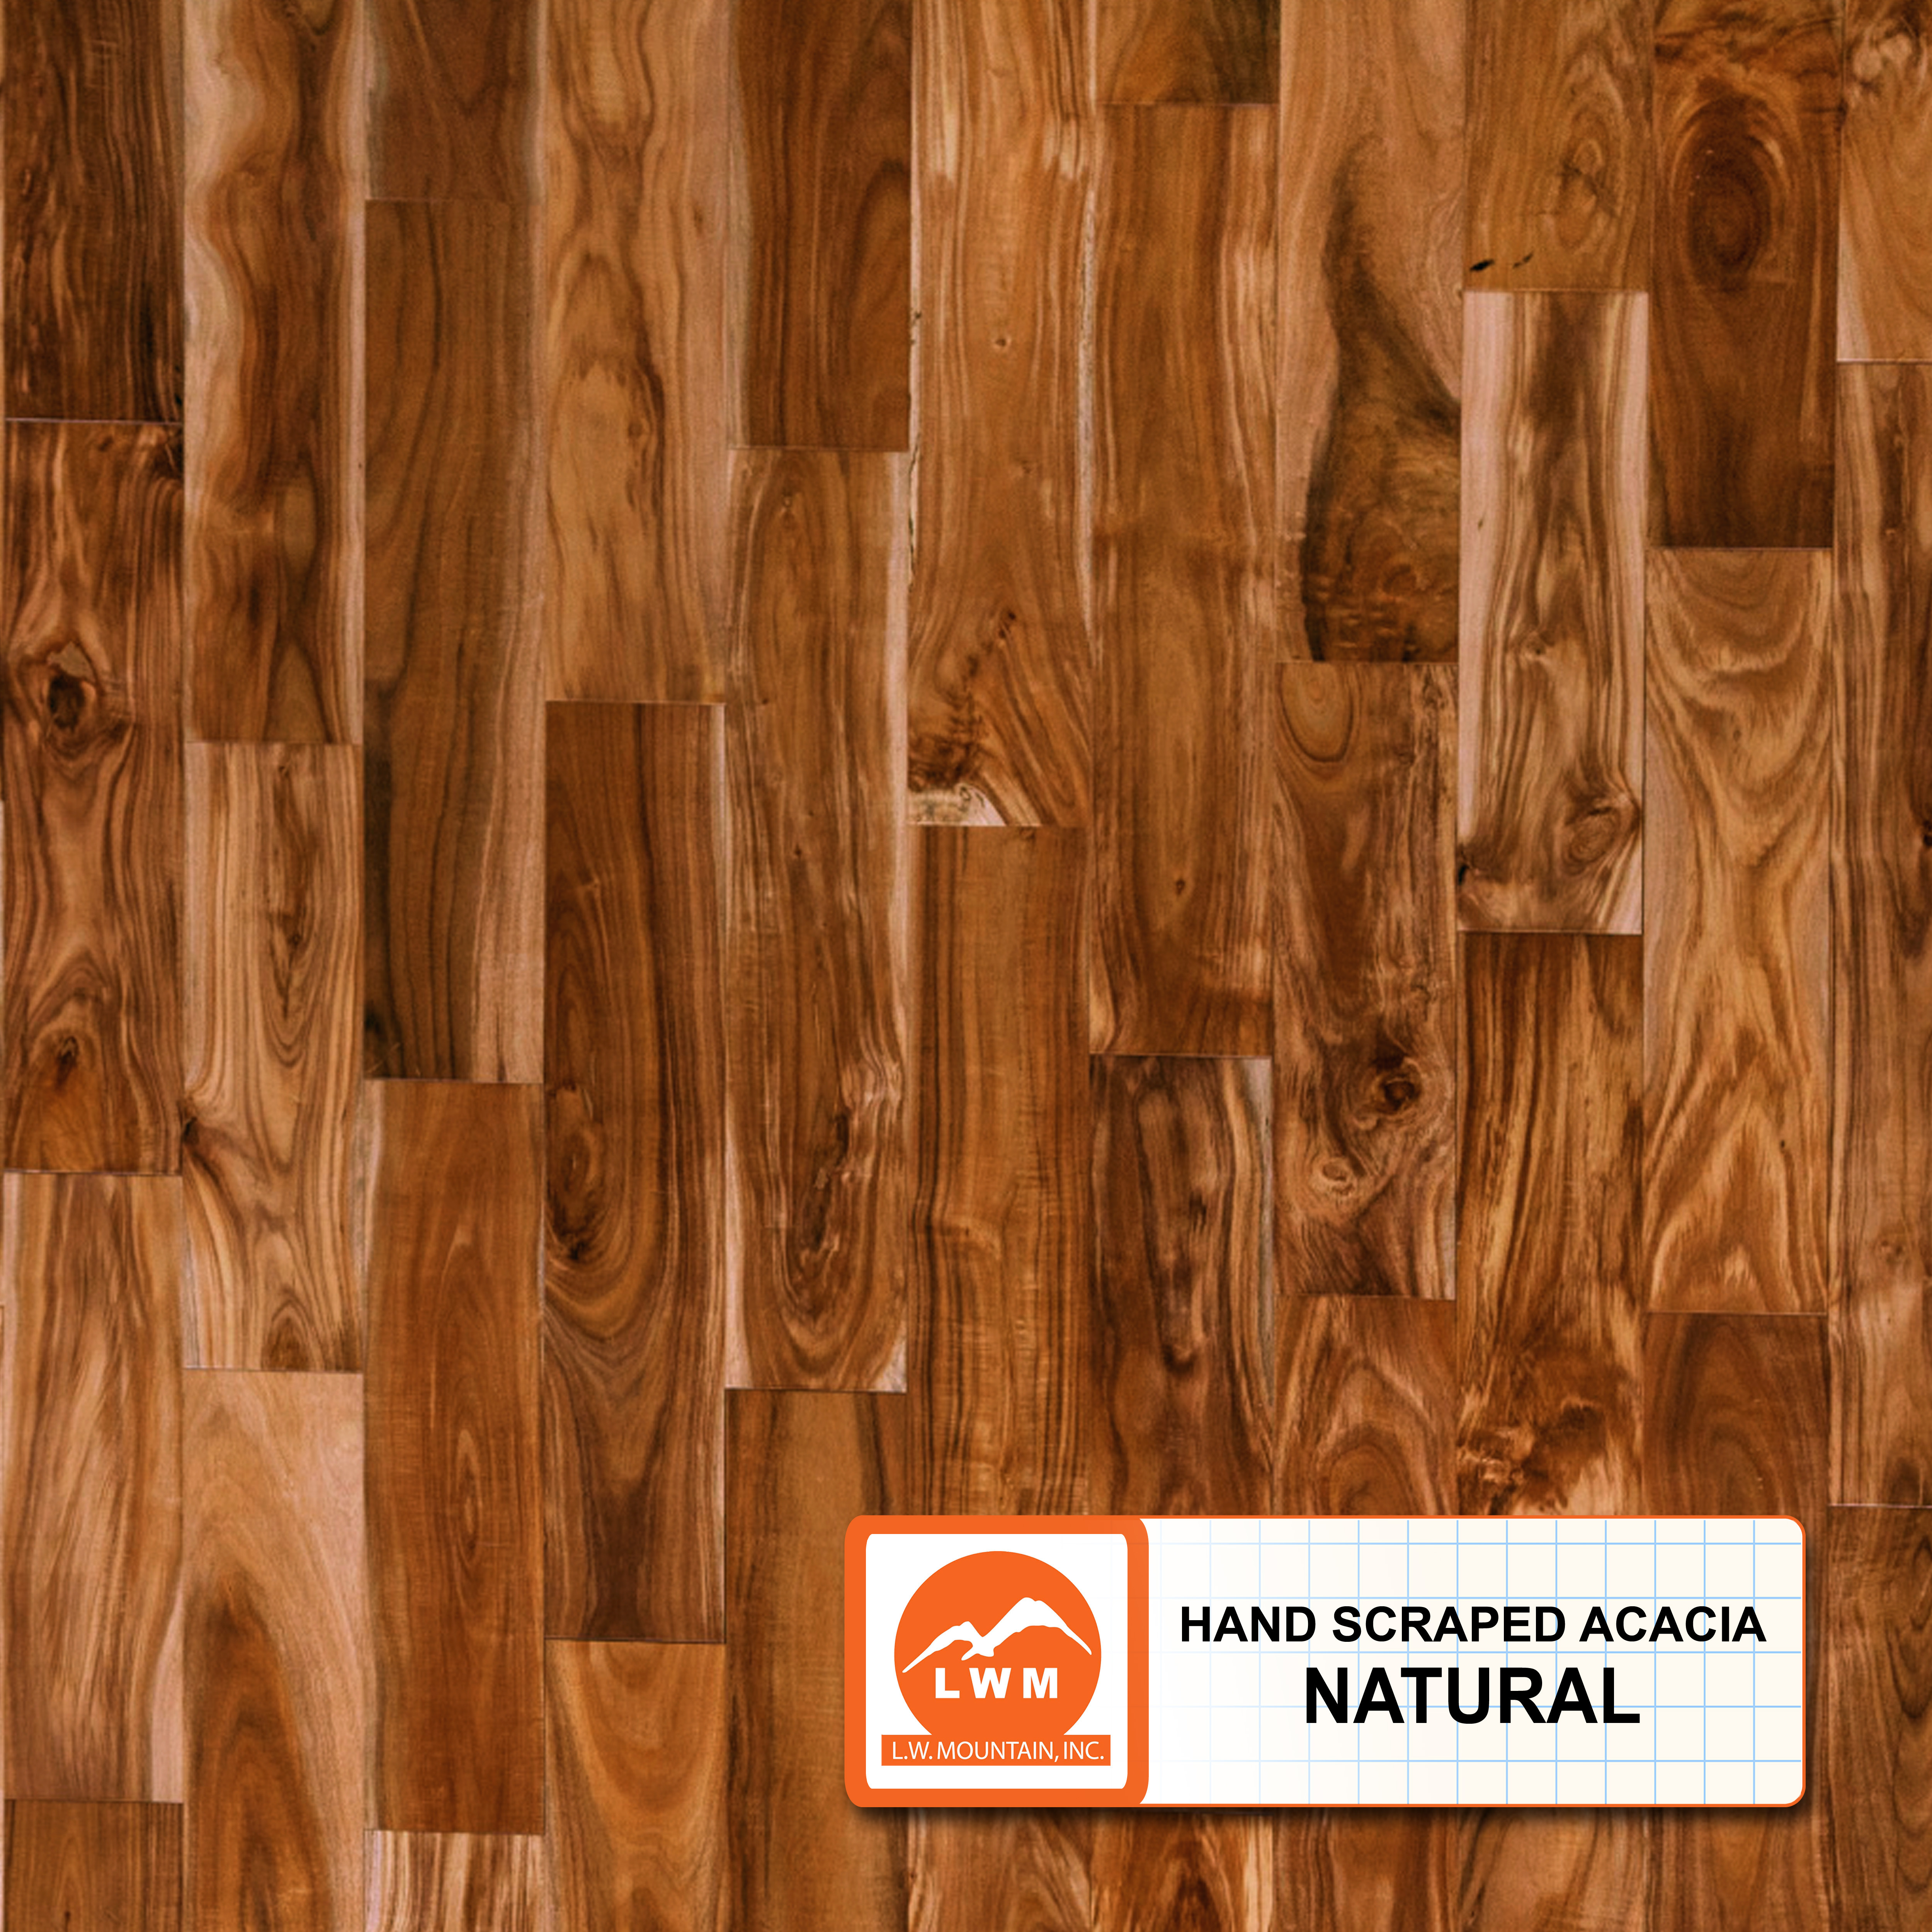 lw mountain hardwood floors inc of lw mountain hardwood flooring reviews wikizie co in hand sed acacia natural lw mountain inc genuine solid hardwood